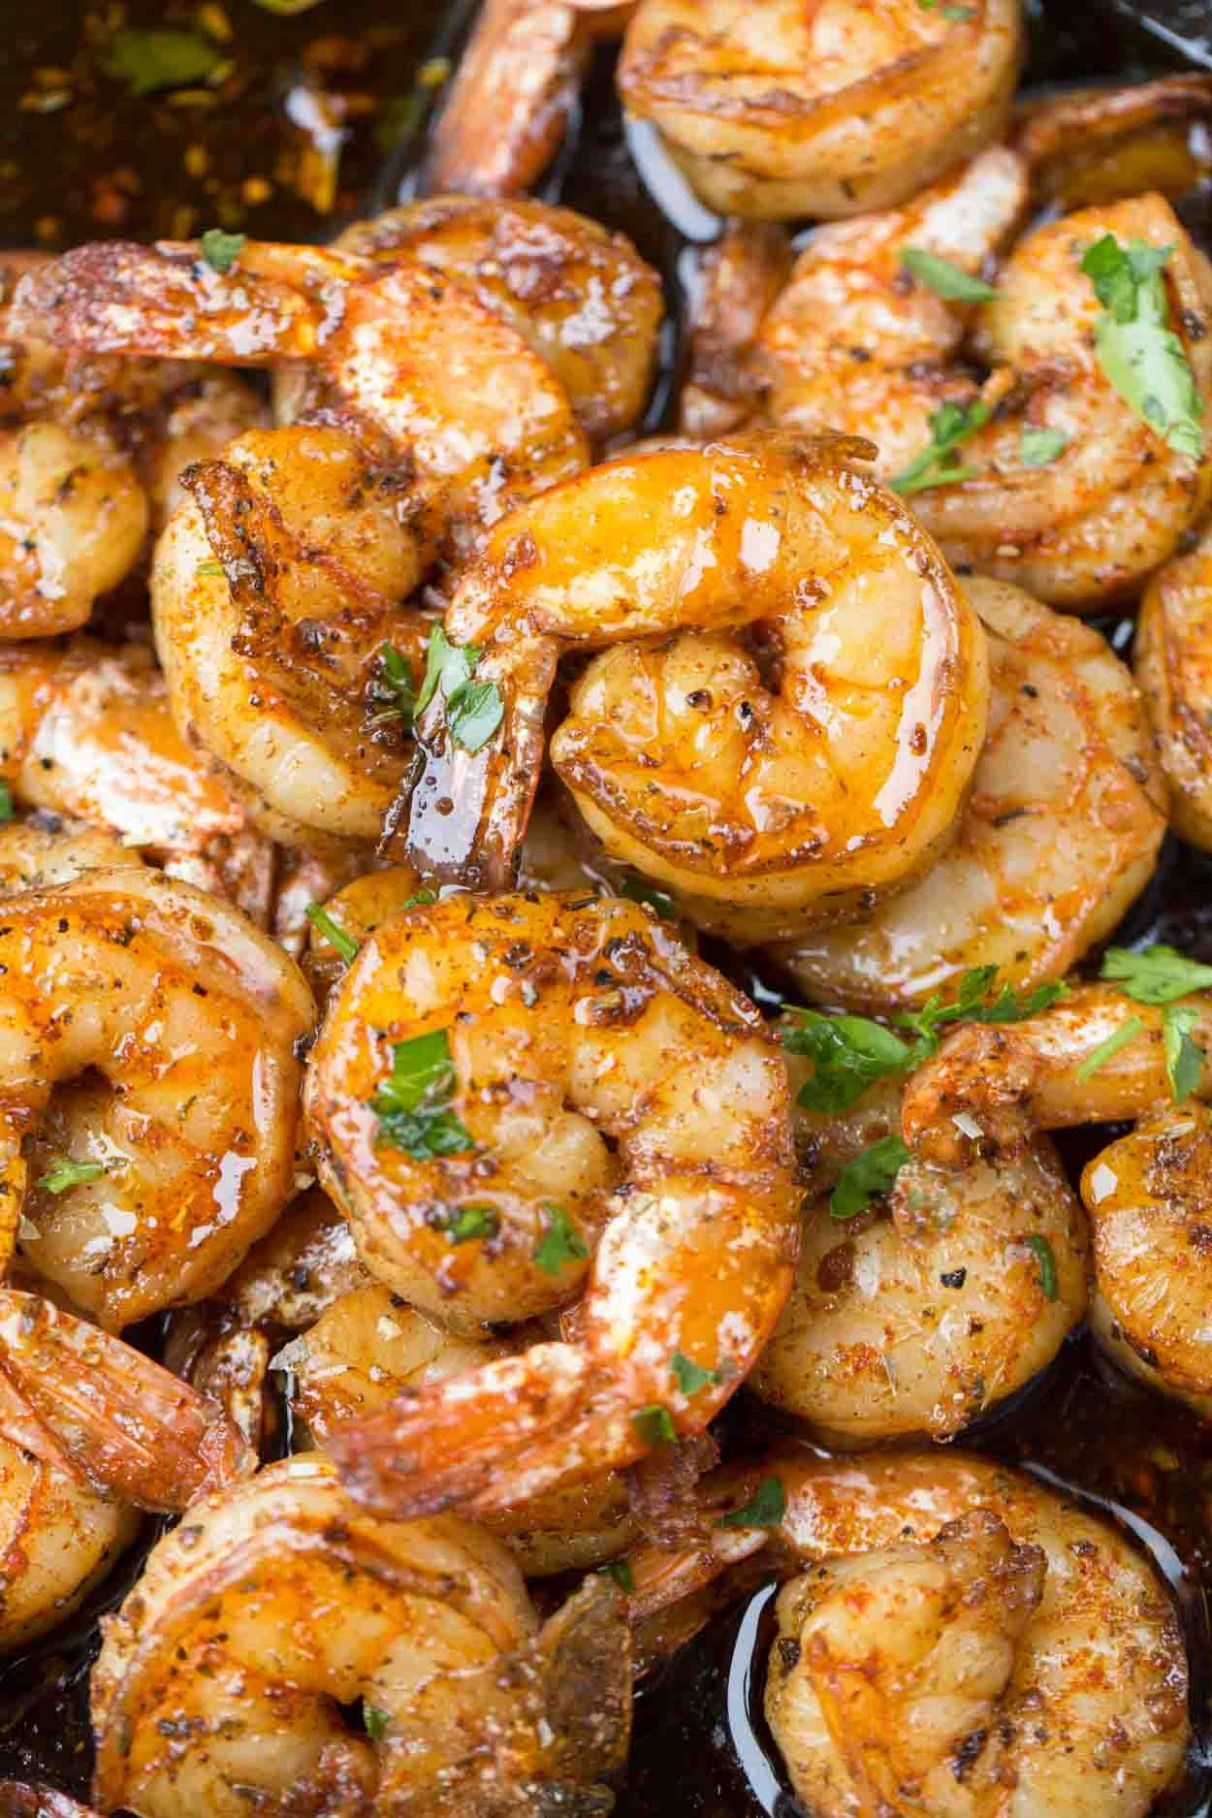 Garlic Butter Sauteed Shrimp - Simple Recipes With Shrimp